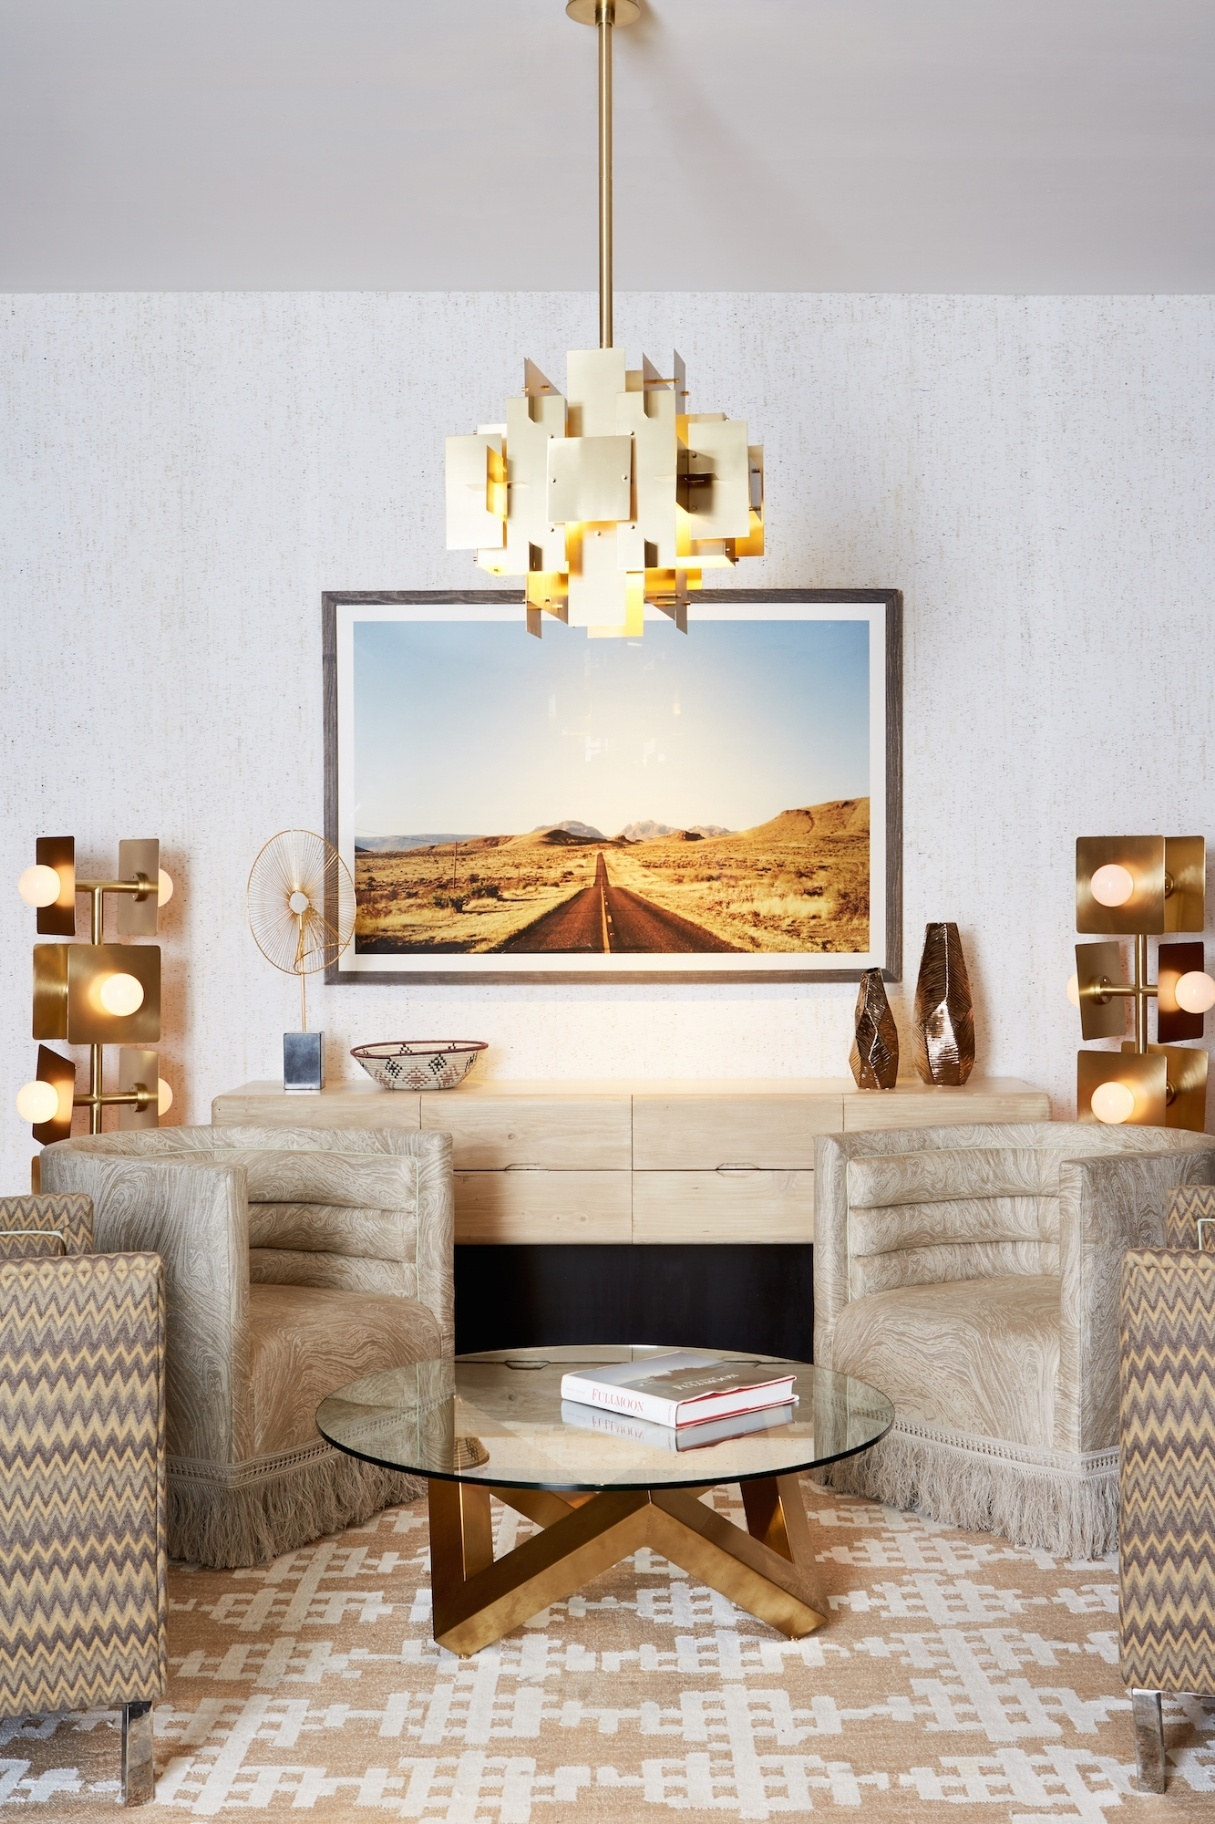 Discover Mid-Century Riviera Hotel in Palm Springs' Updated Look! Hotel in Palm Springs Discover Mid-Century Riviera Hotel in Palm Springs' Updated Look! Discover Mid Century Riviera Hotel in Palm Springs    Updated Look 7